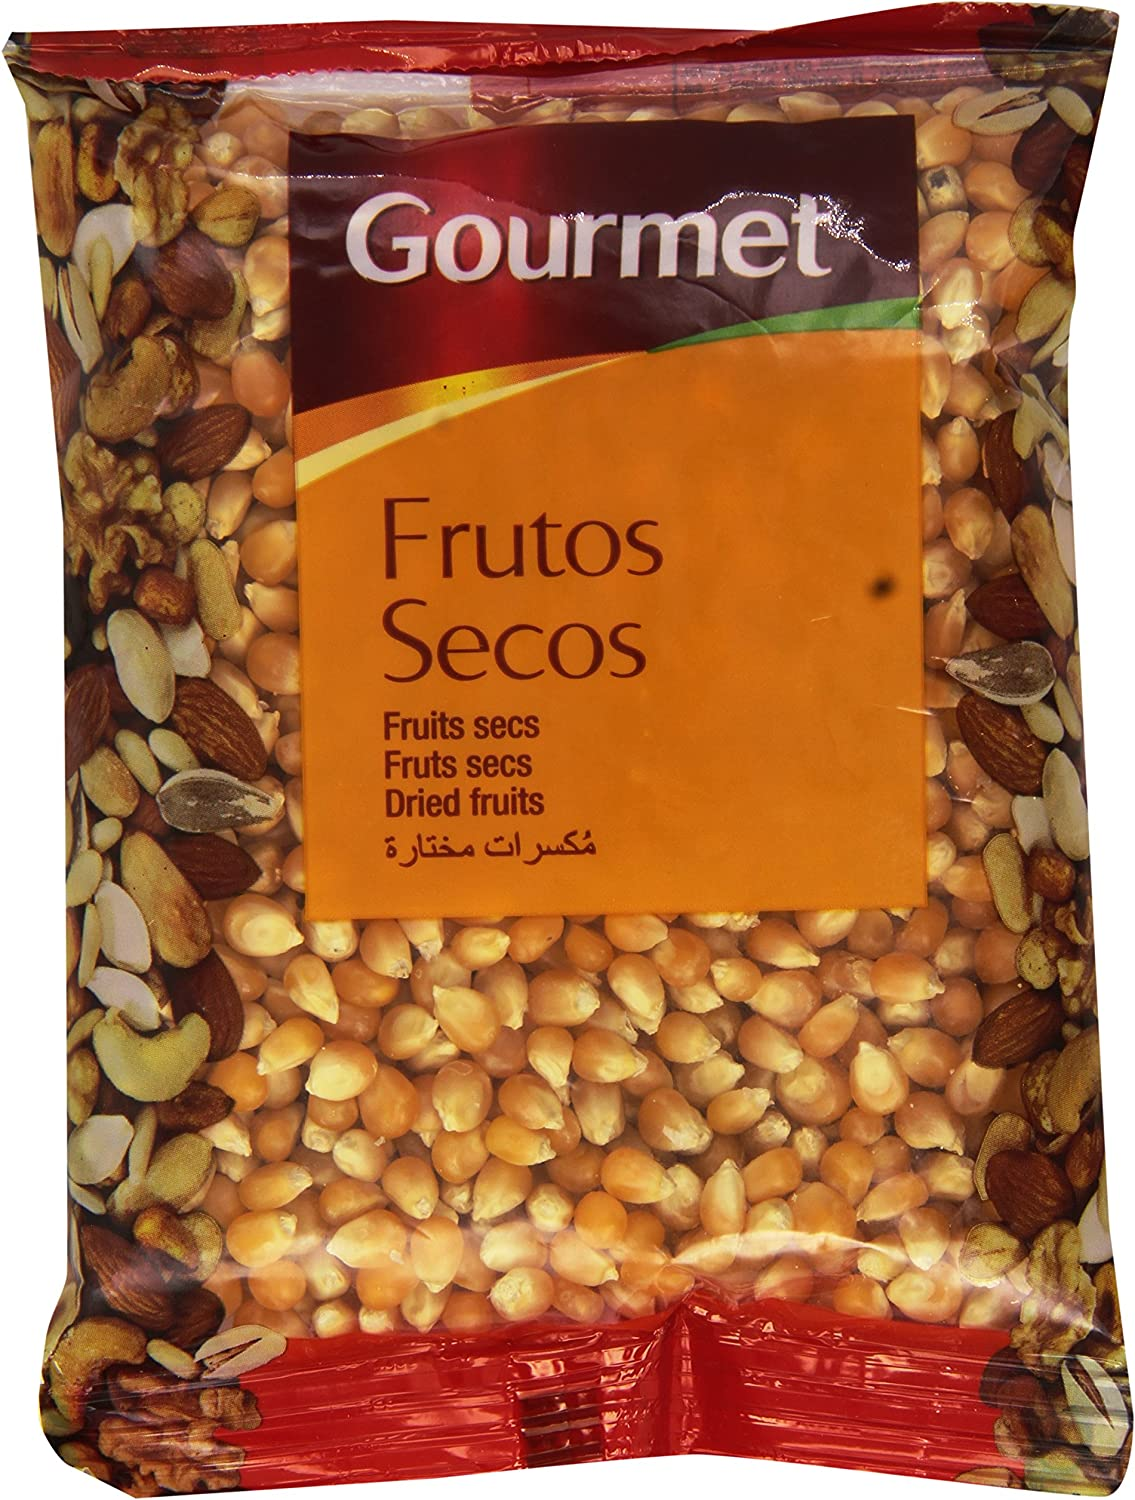 Gourmet - Frutos secos - Maíz para palomitas - 200 g: Amazon.es ...